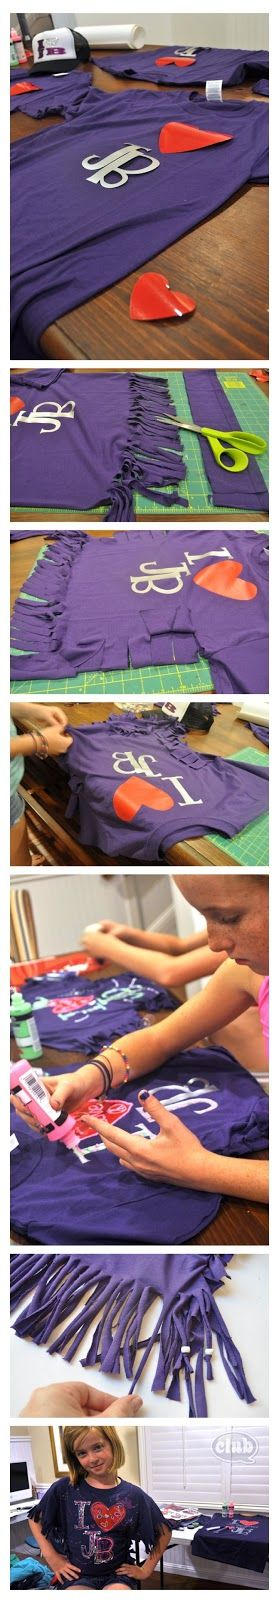 Justin Bieber styled shirt DIY...this is great, just not for Bieber...